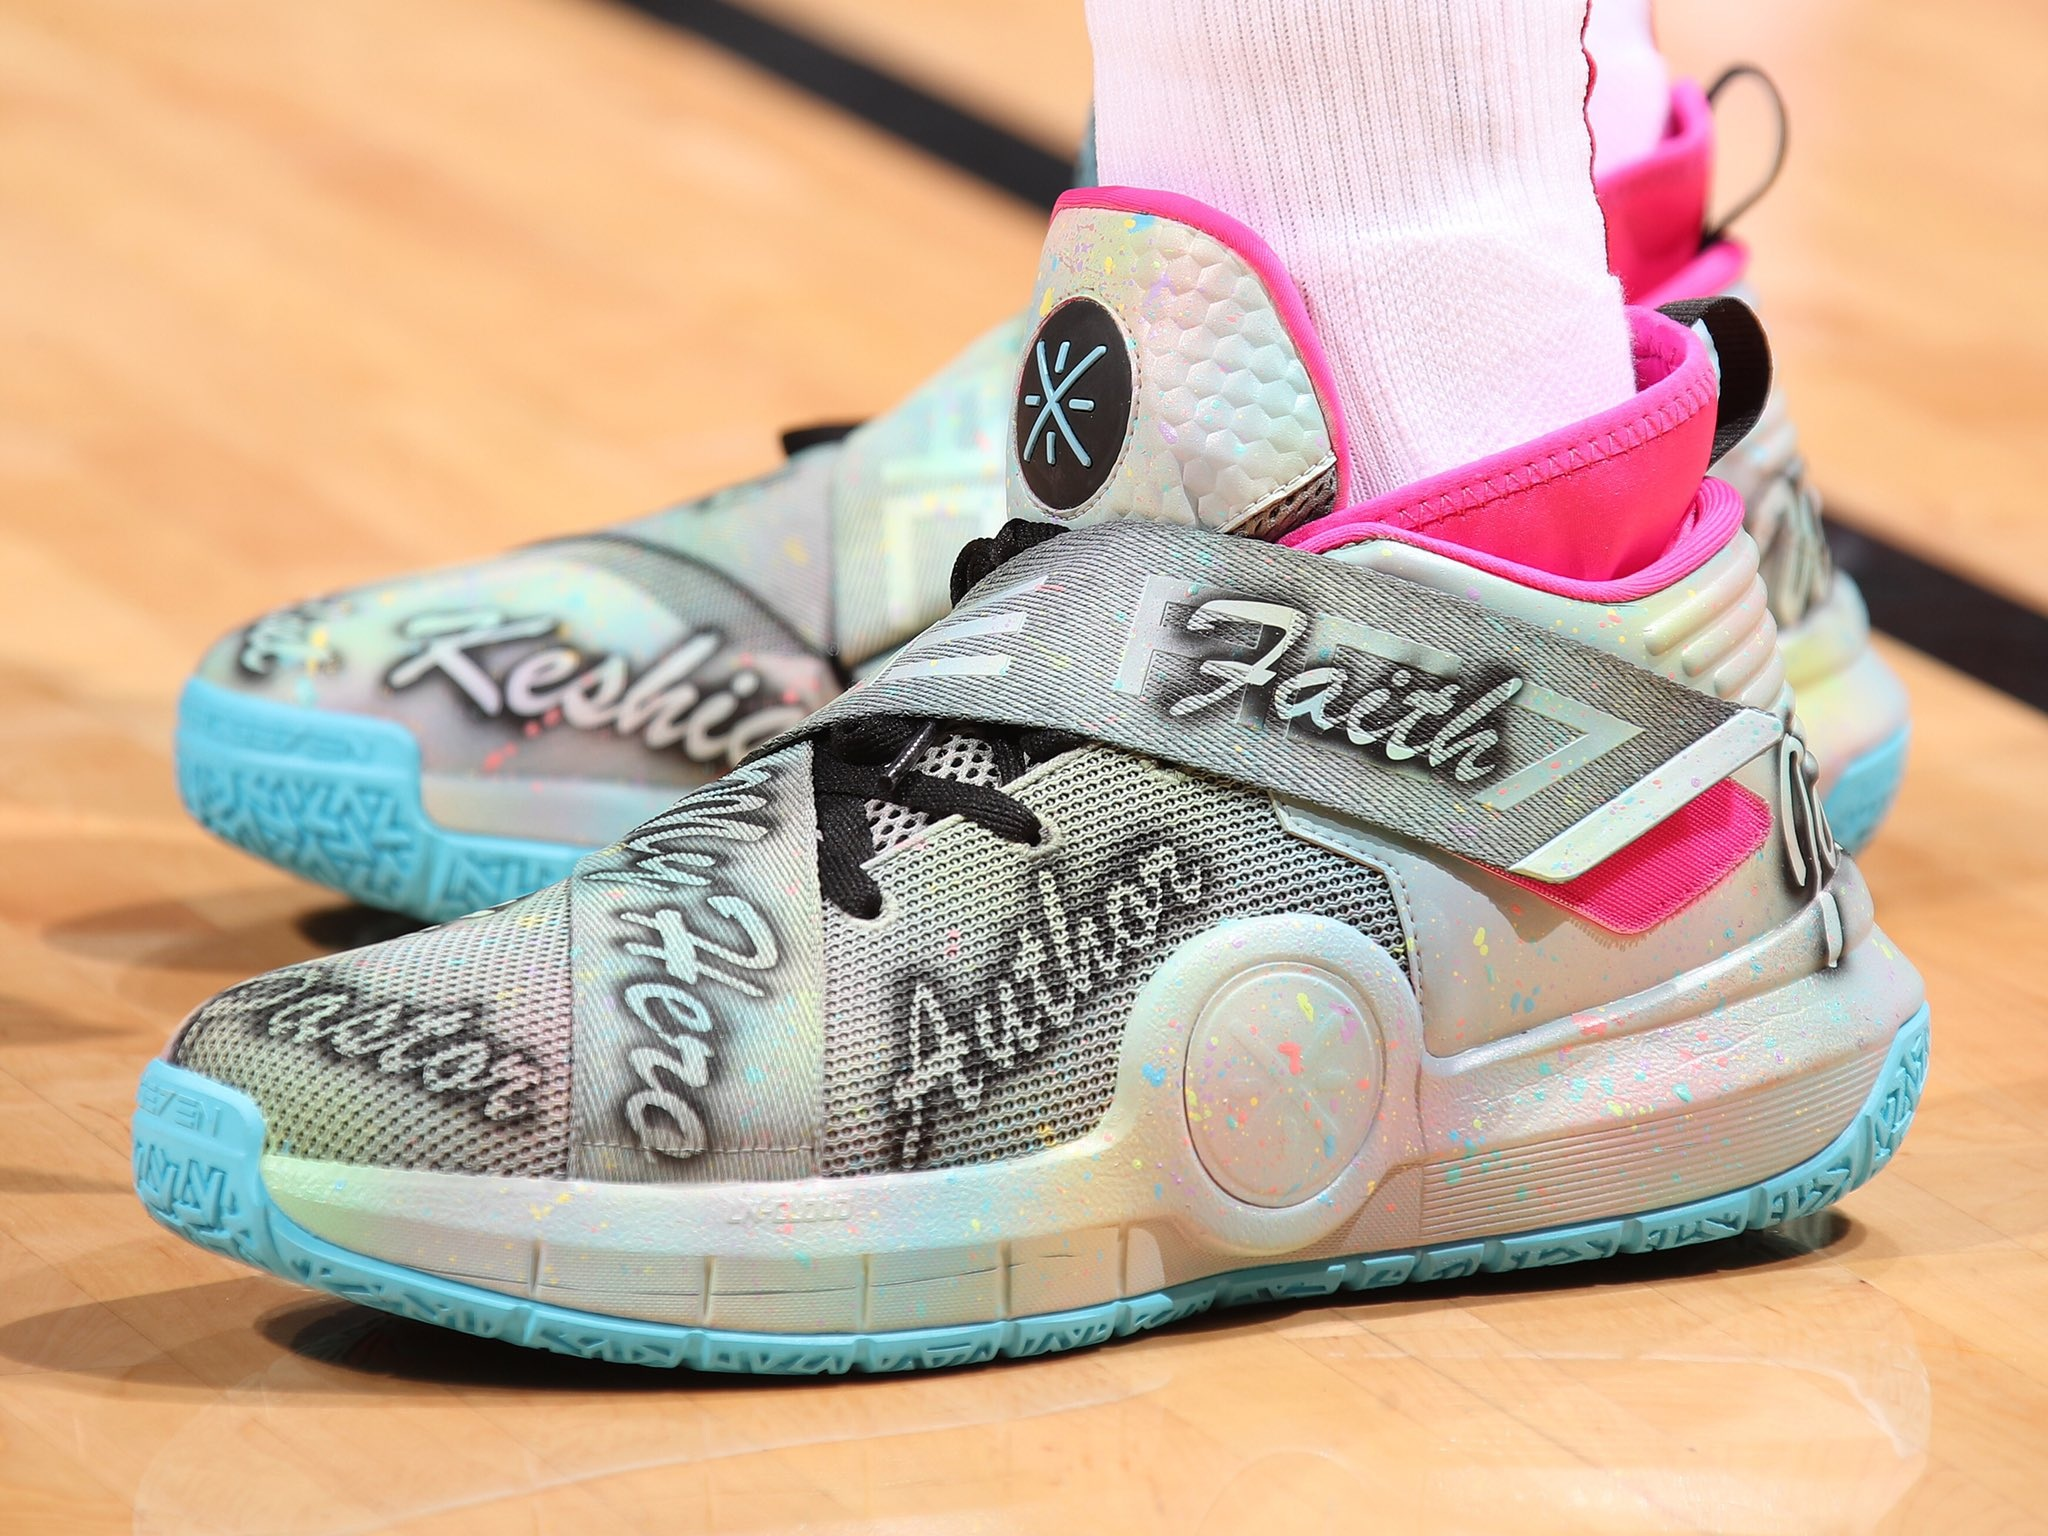 Dwyane Wade pays tribute to his mother with the Li-Ning Wade All City 7 Custom Colorway -